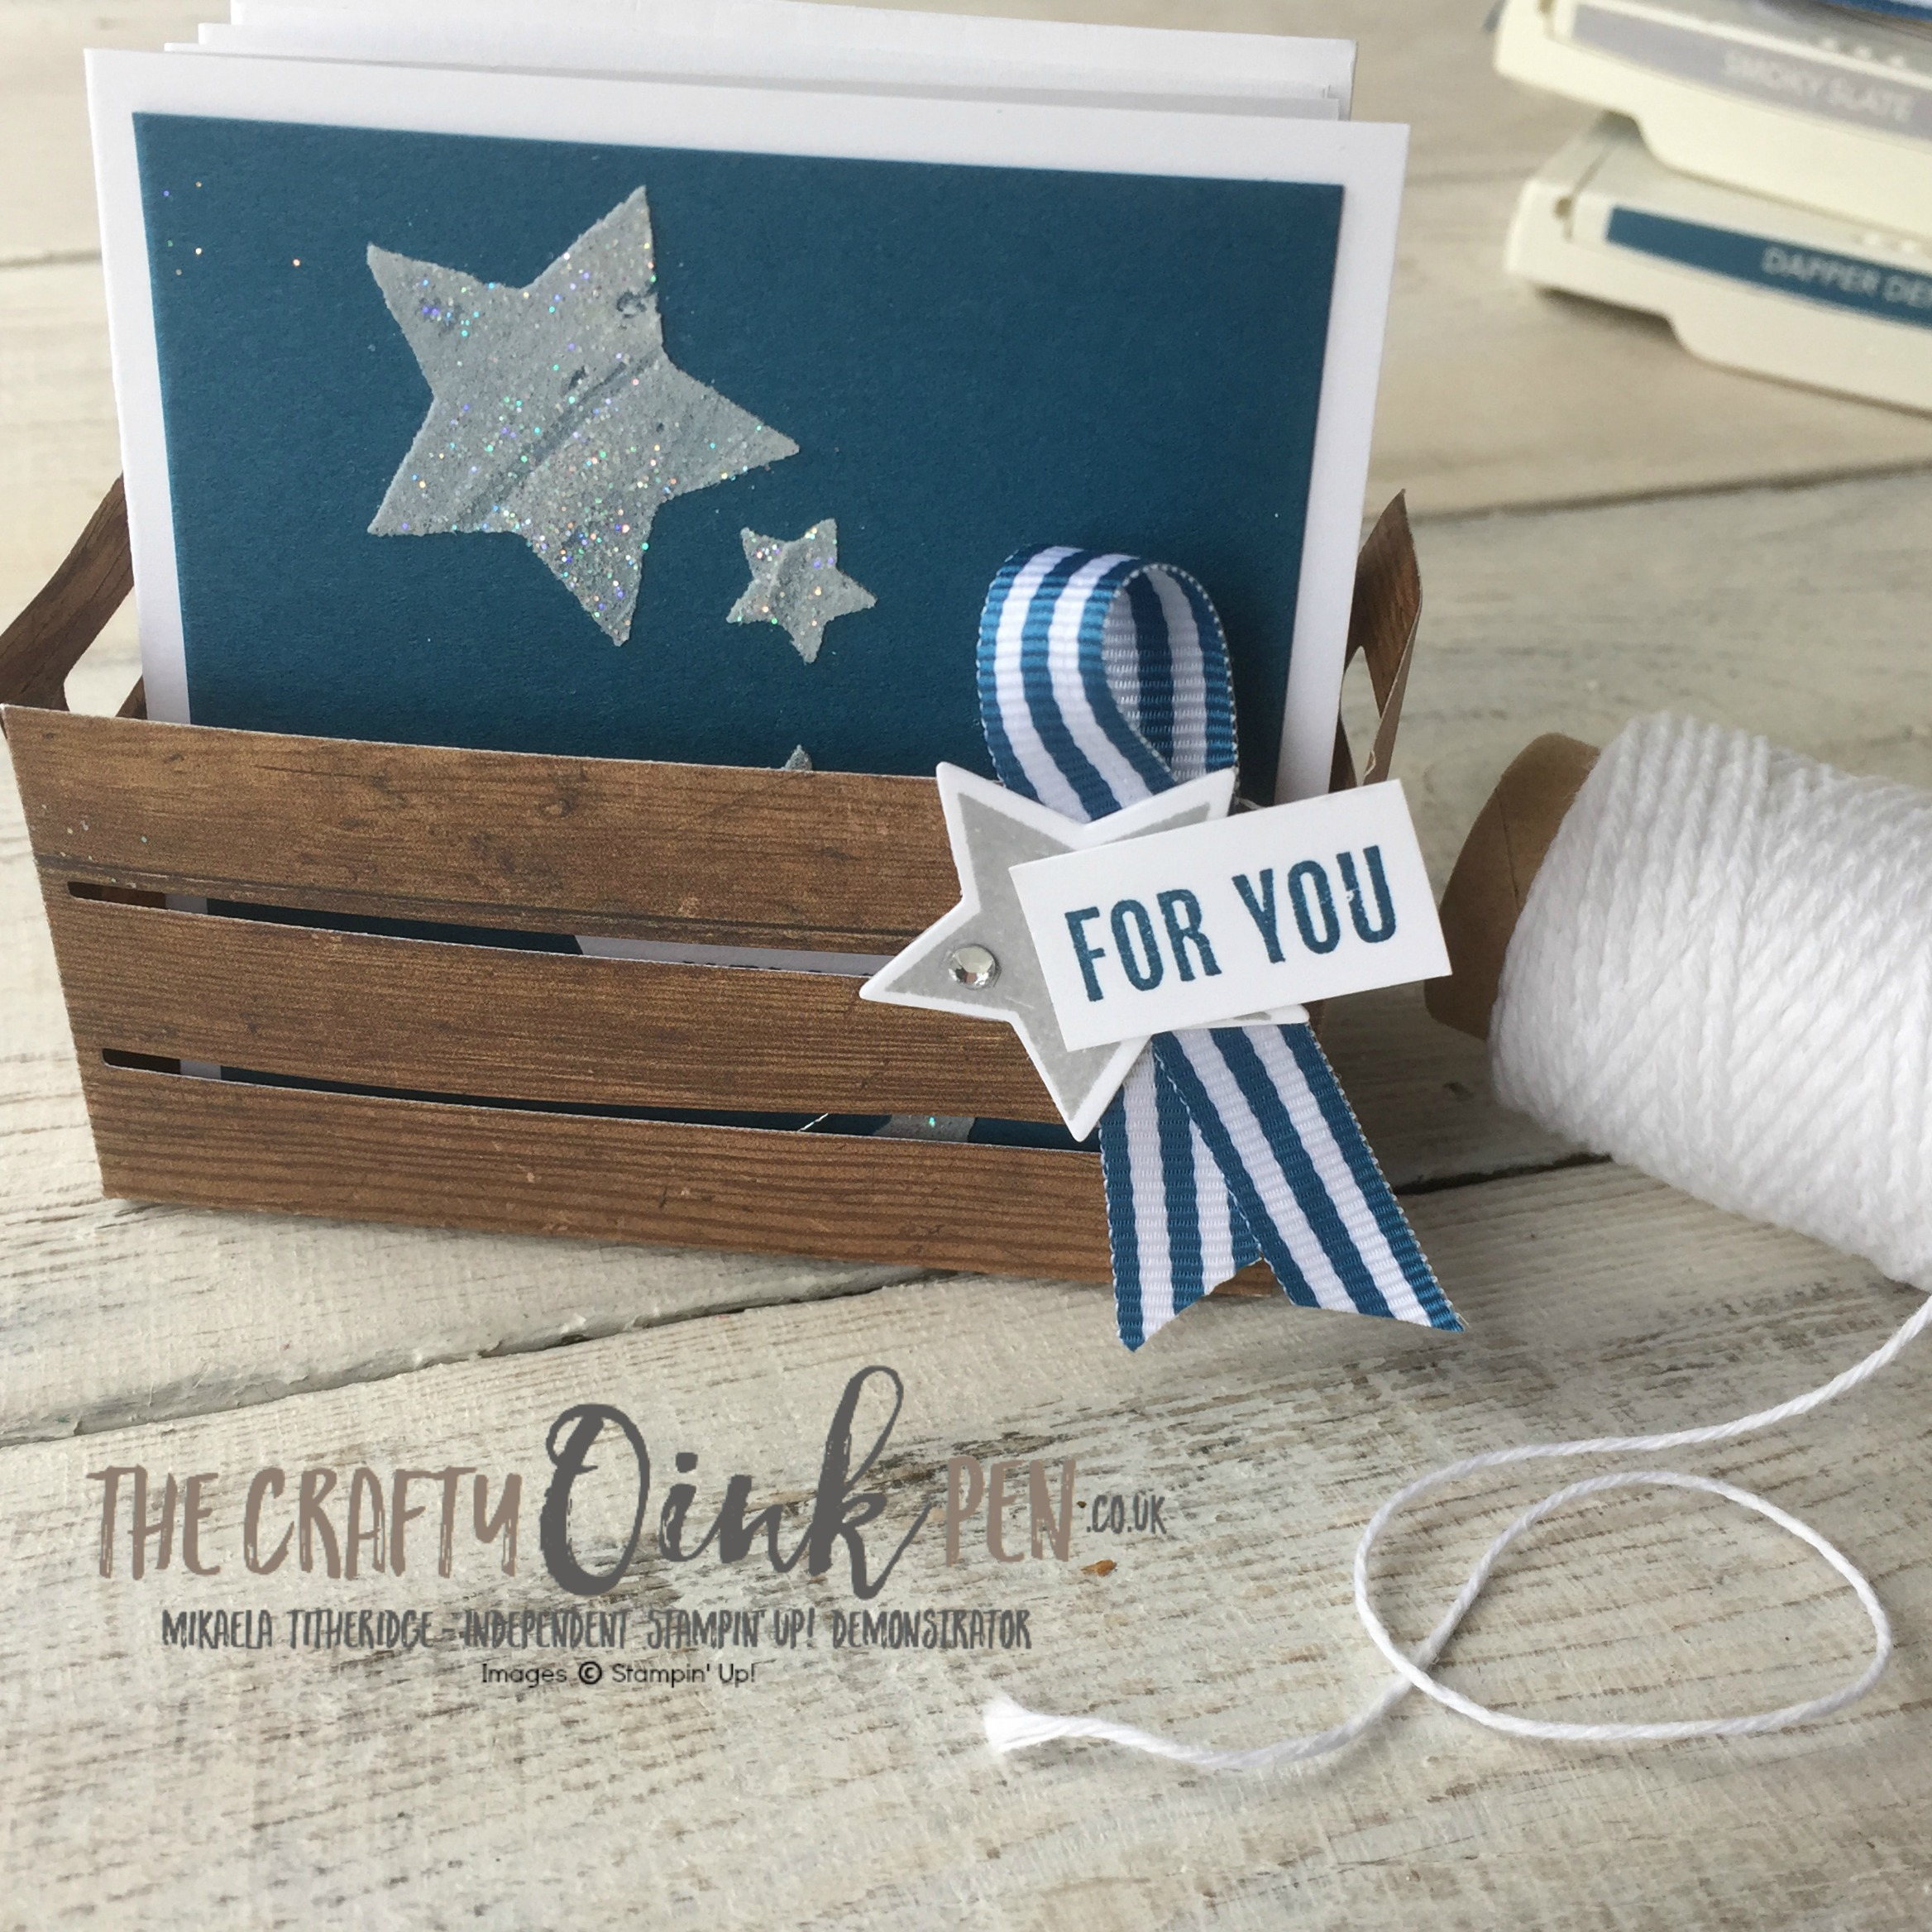 Tricks of the Trade by Mikaela Titheridge, Independent Stampin' Up! Demonstrator, The Crafty oINK Pen and the Creation Station Blog Hop Design Team